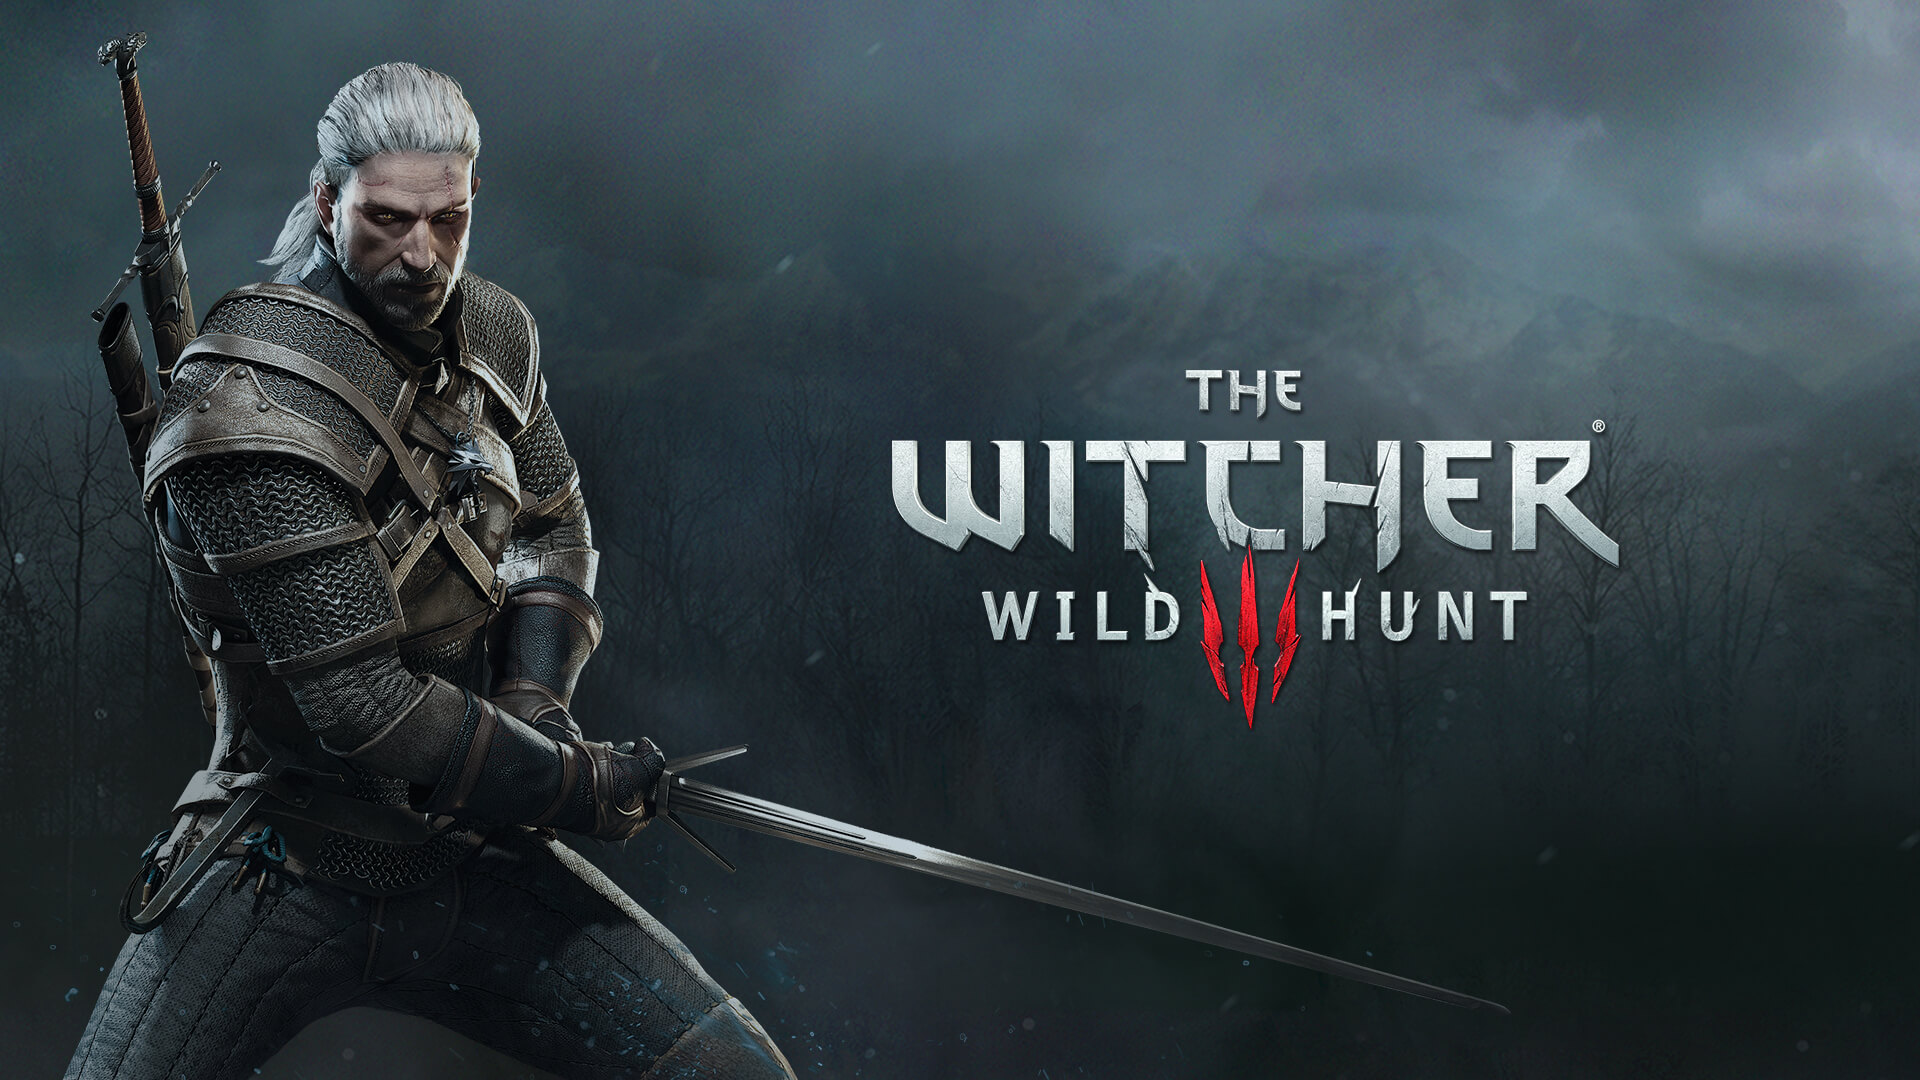 Witcher 3 review the witcher 3 review solutioingenieria Gallery